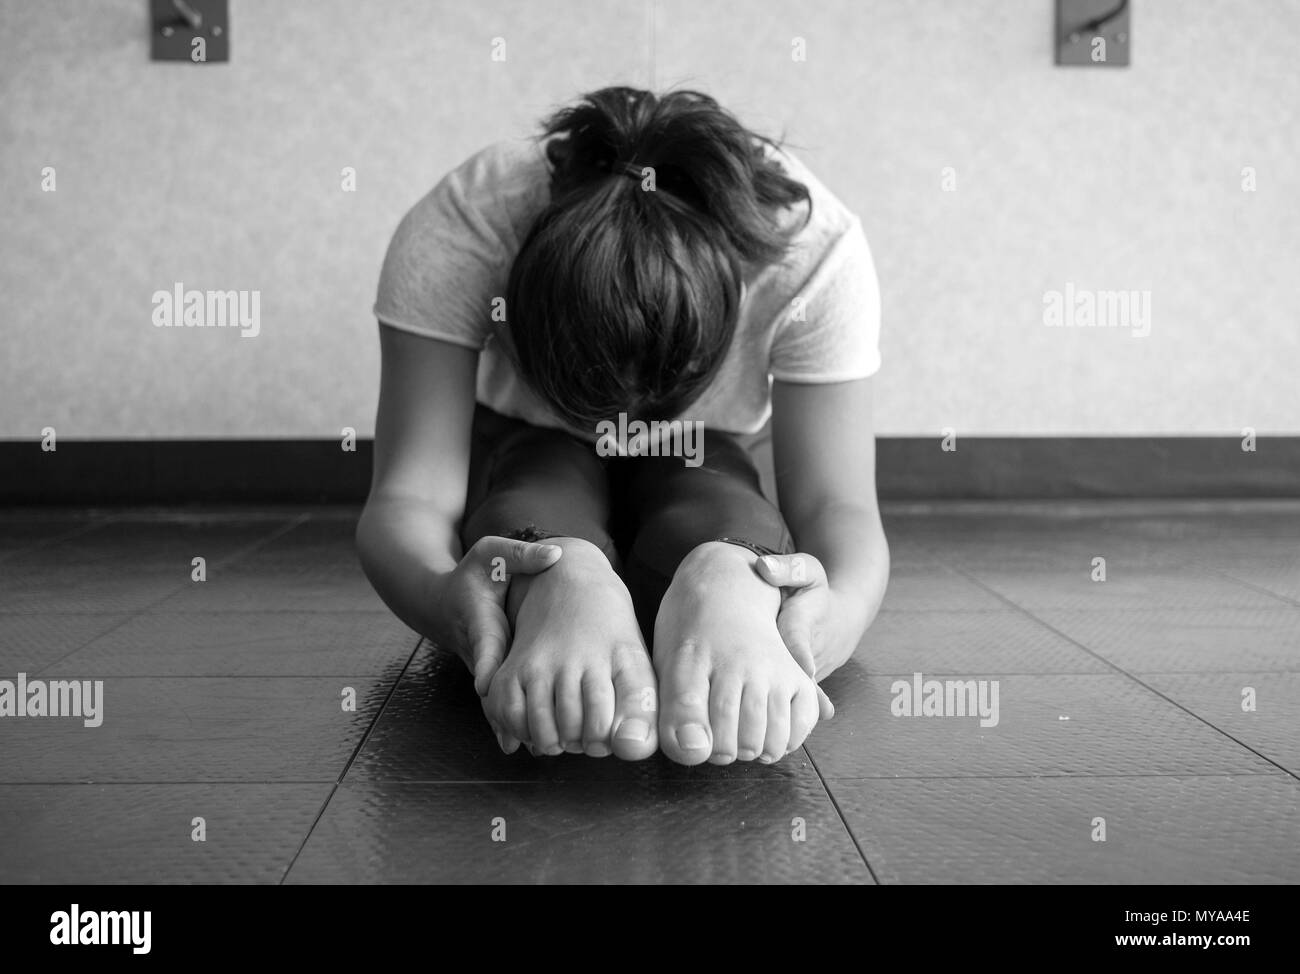 Black and white version of Young woman performing and sit and reach to stretch hamstrings and increase flexibility - Stock Image